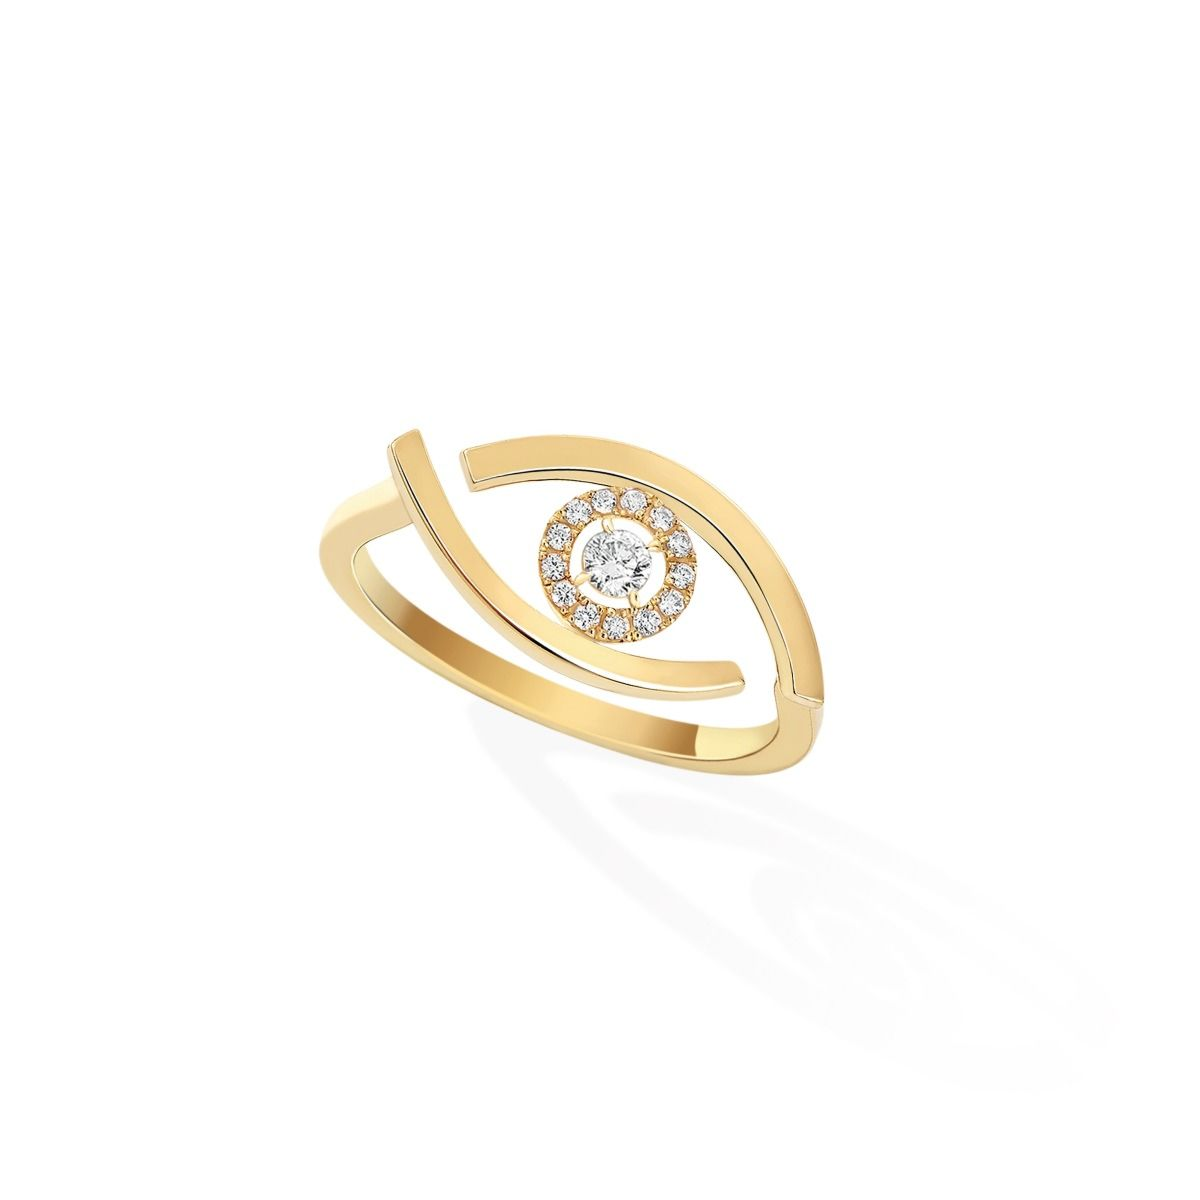 Lucky Eye RING - YELLOW GOLD